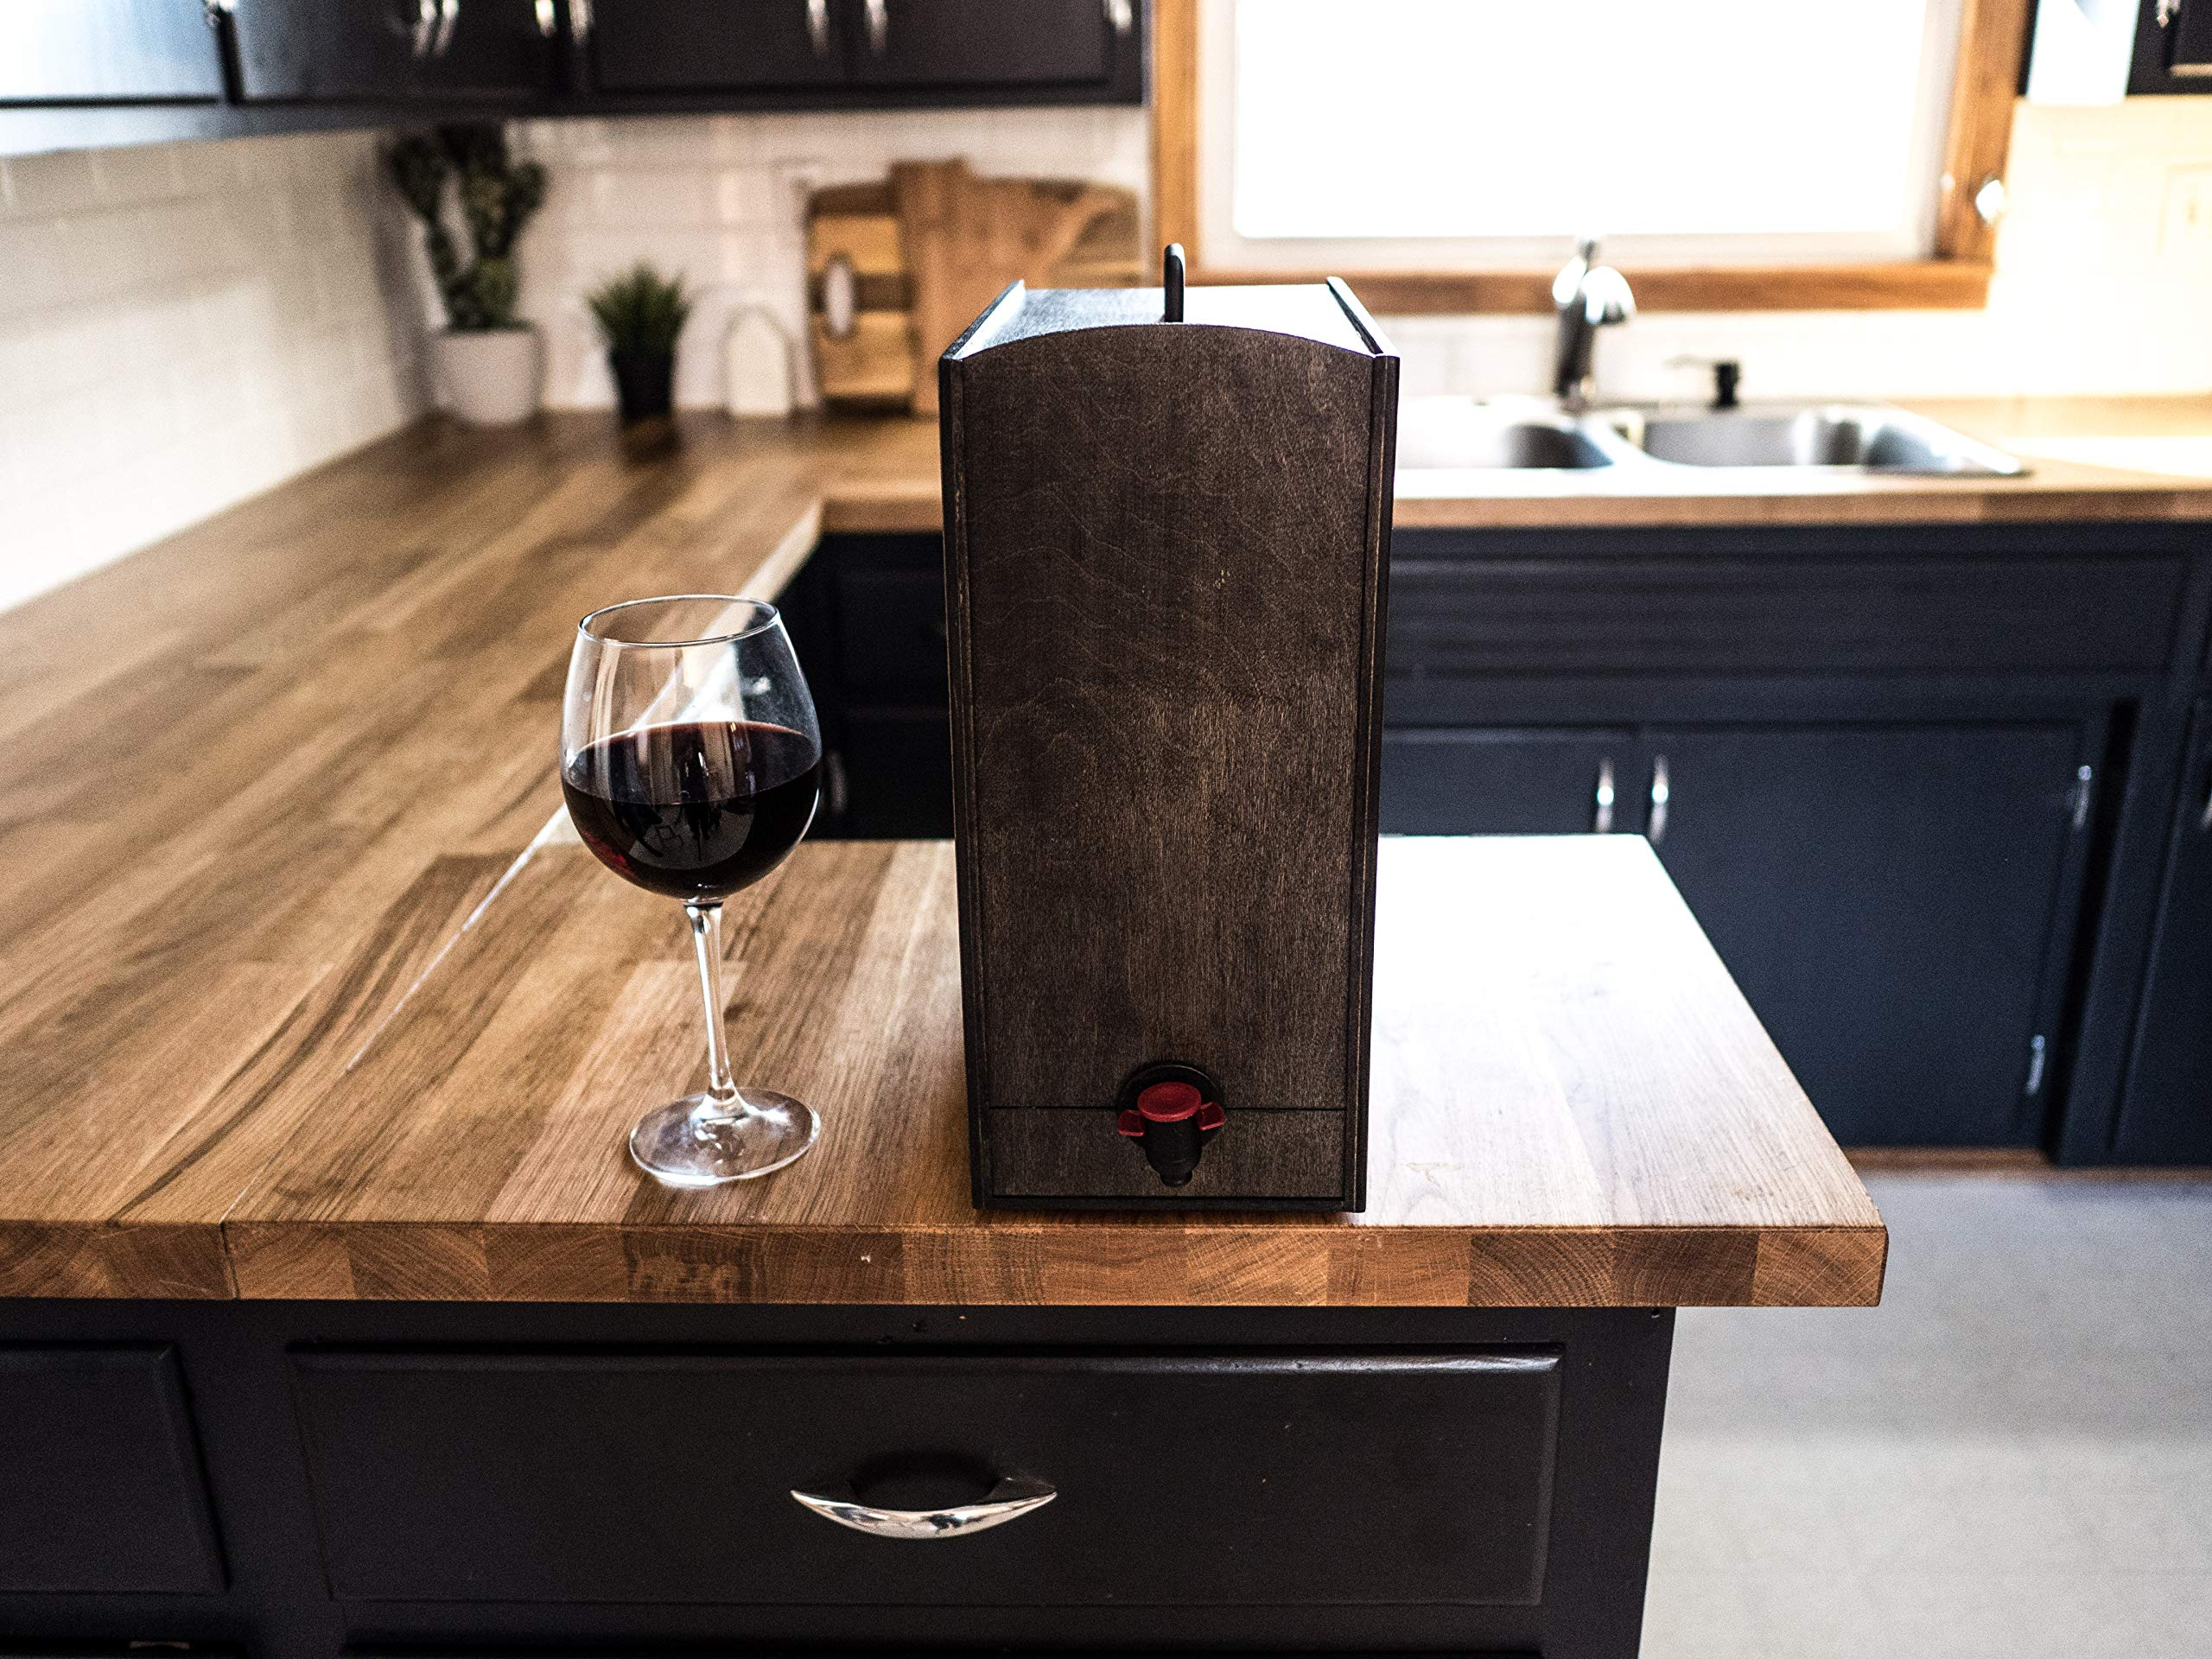 Boxed Wine Wood Case by Winewood | Black Color | Fits 3 Liter and 5 Liter Boxes of Wine | Holder, Dispenser, Cover for Boxed Wine by Winewood Cases (Image #2)